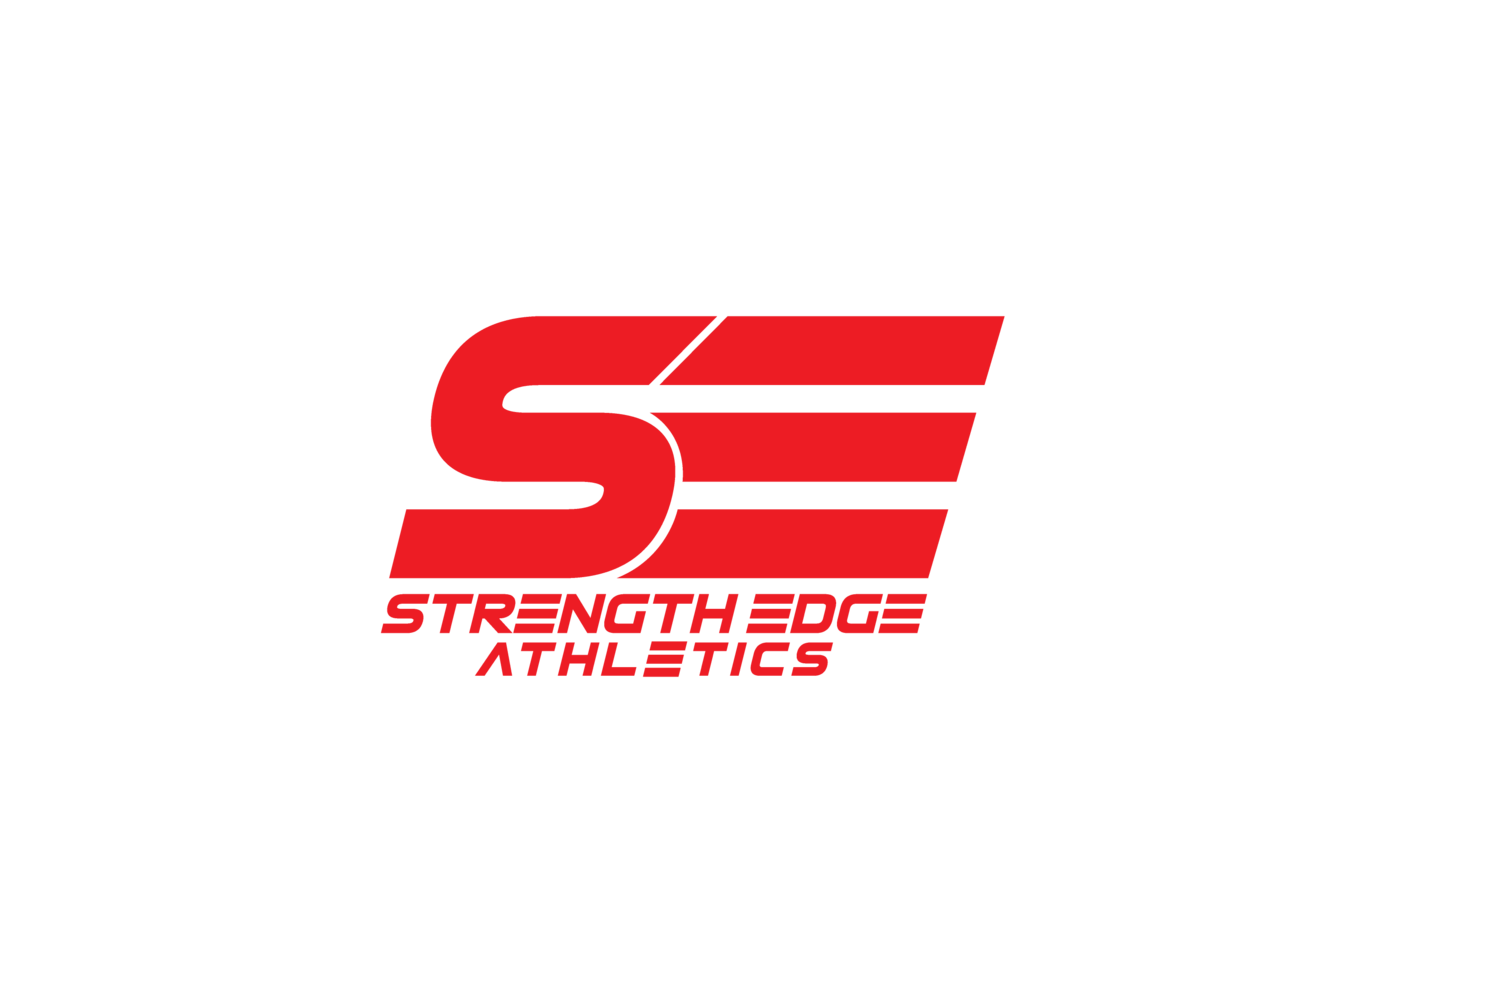 Strength Edge Athletics